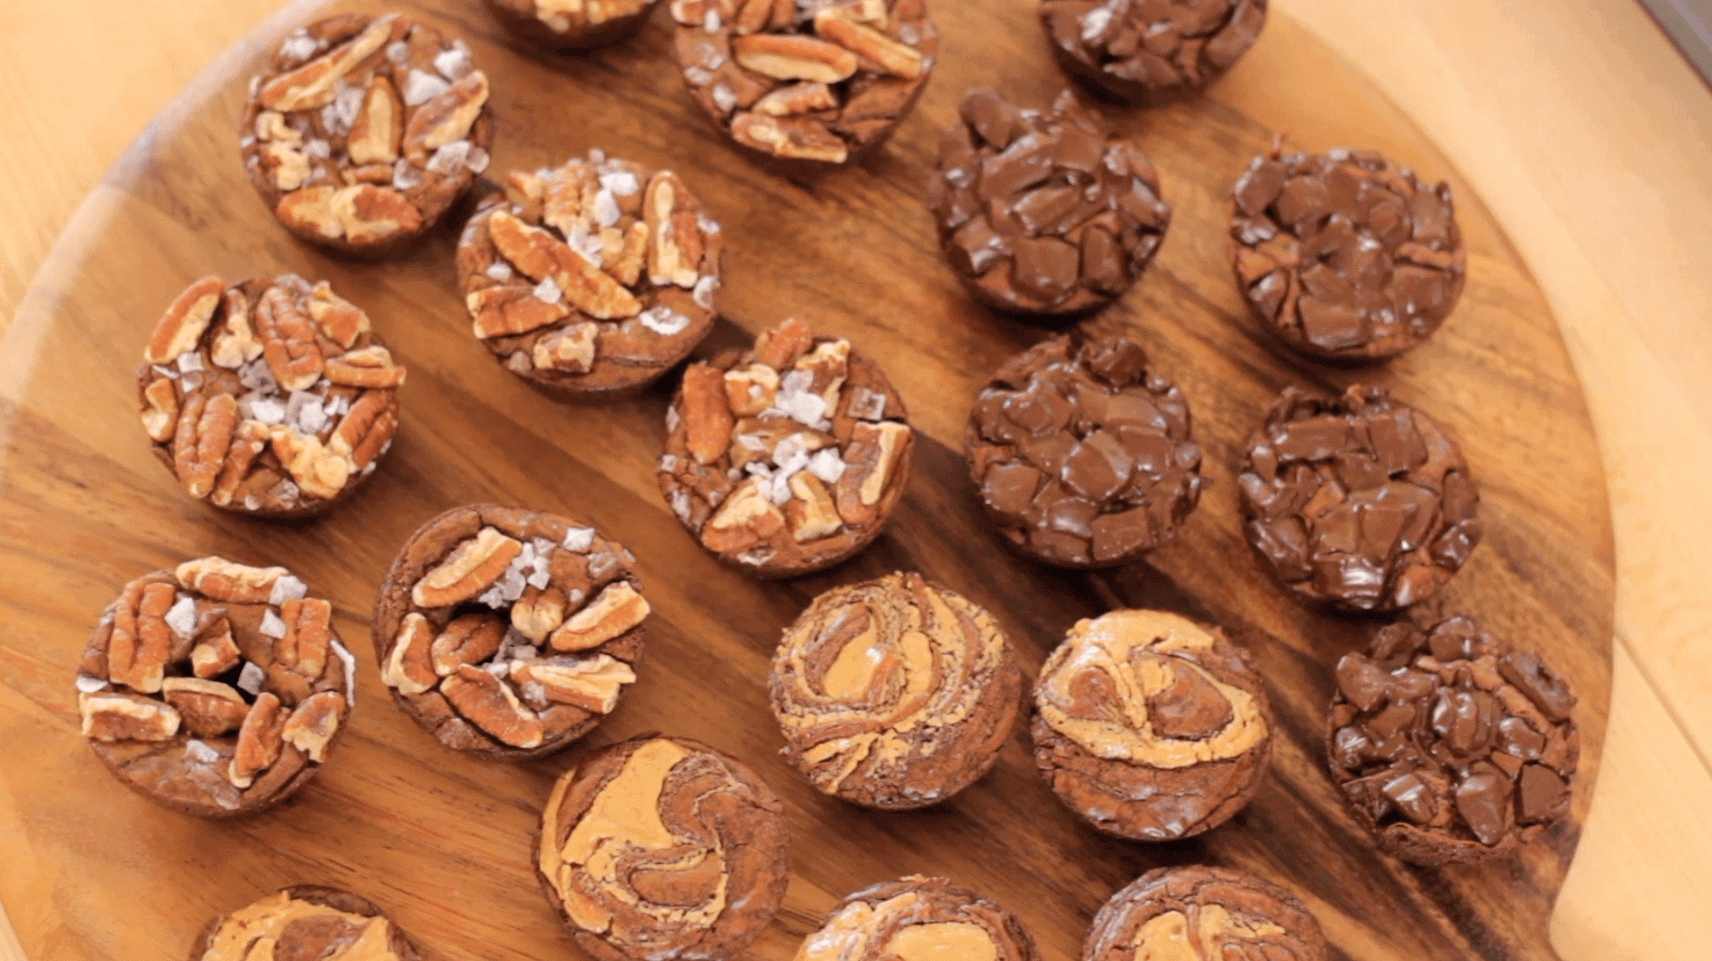 Brownie Bites on a wooden board with different toppings